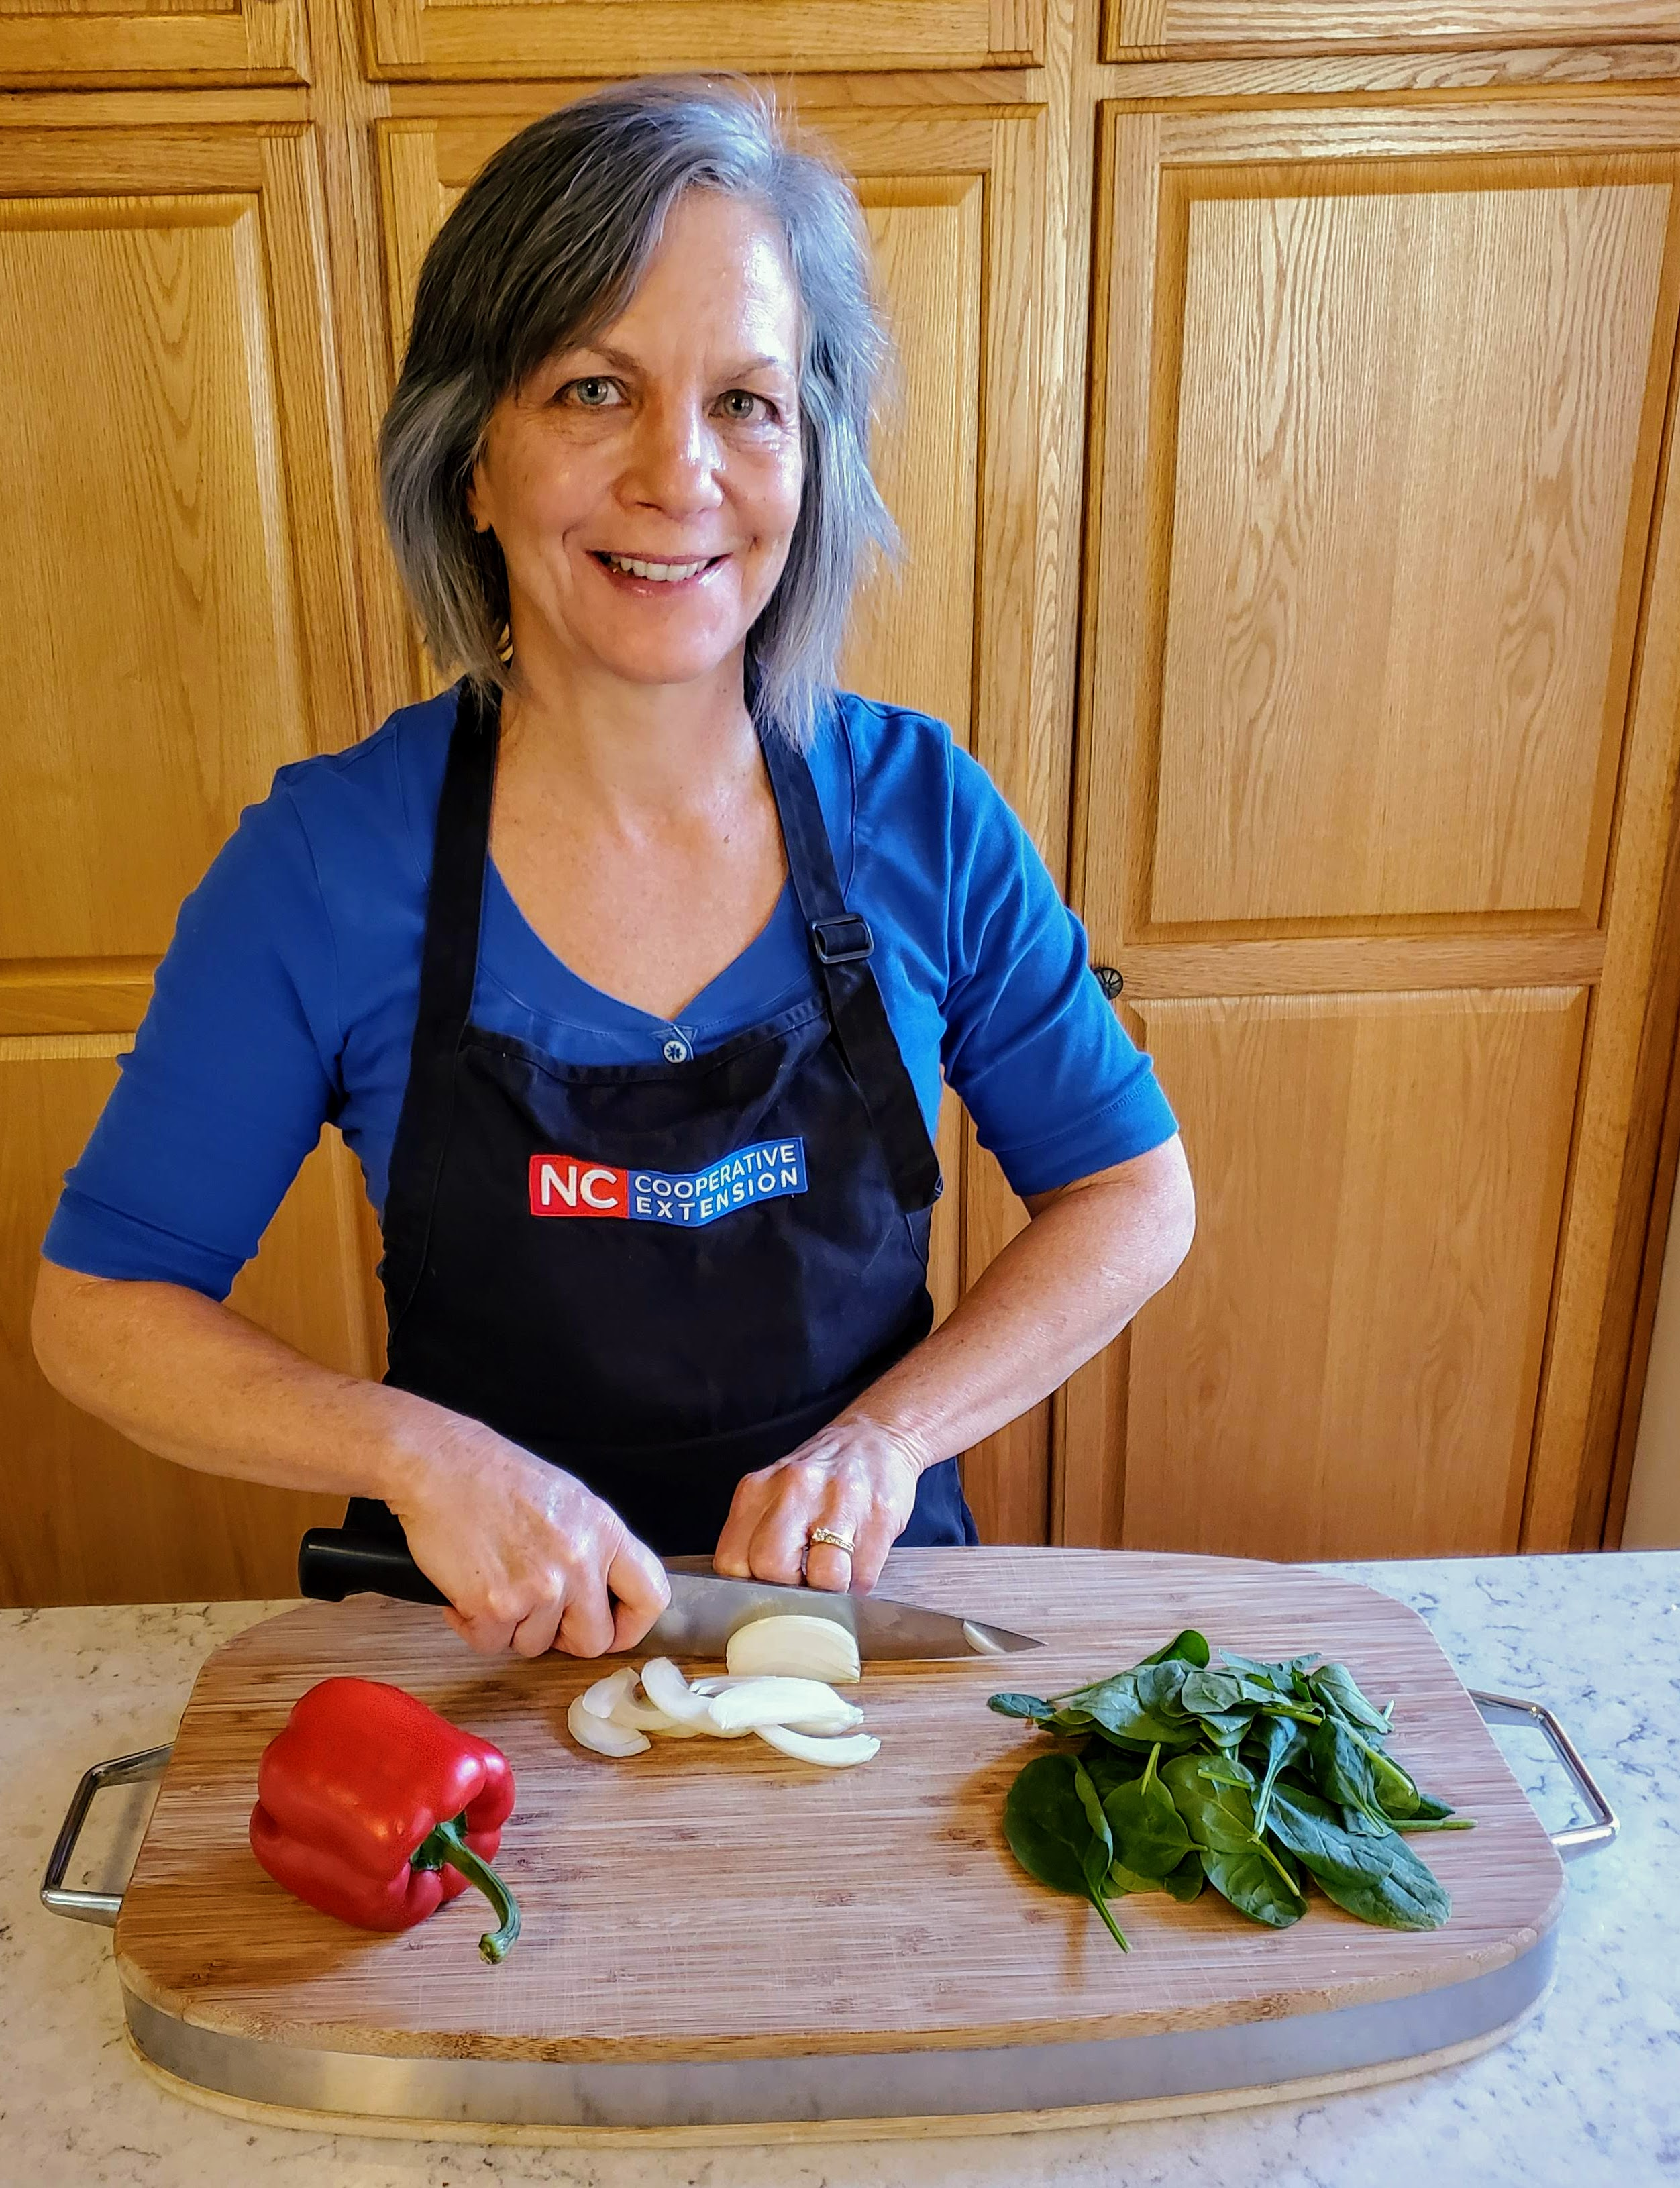 Margie Mansure cuts veggies